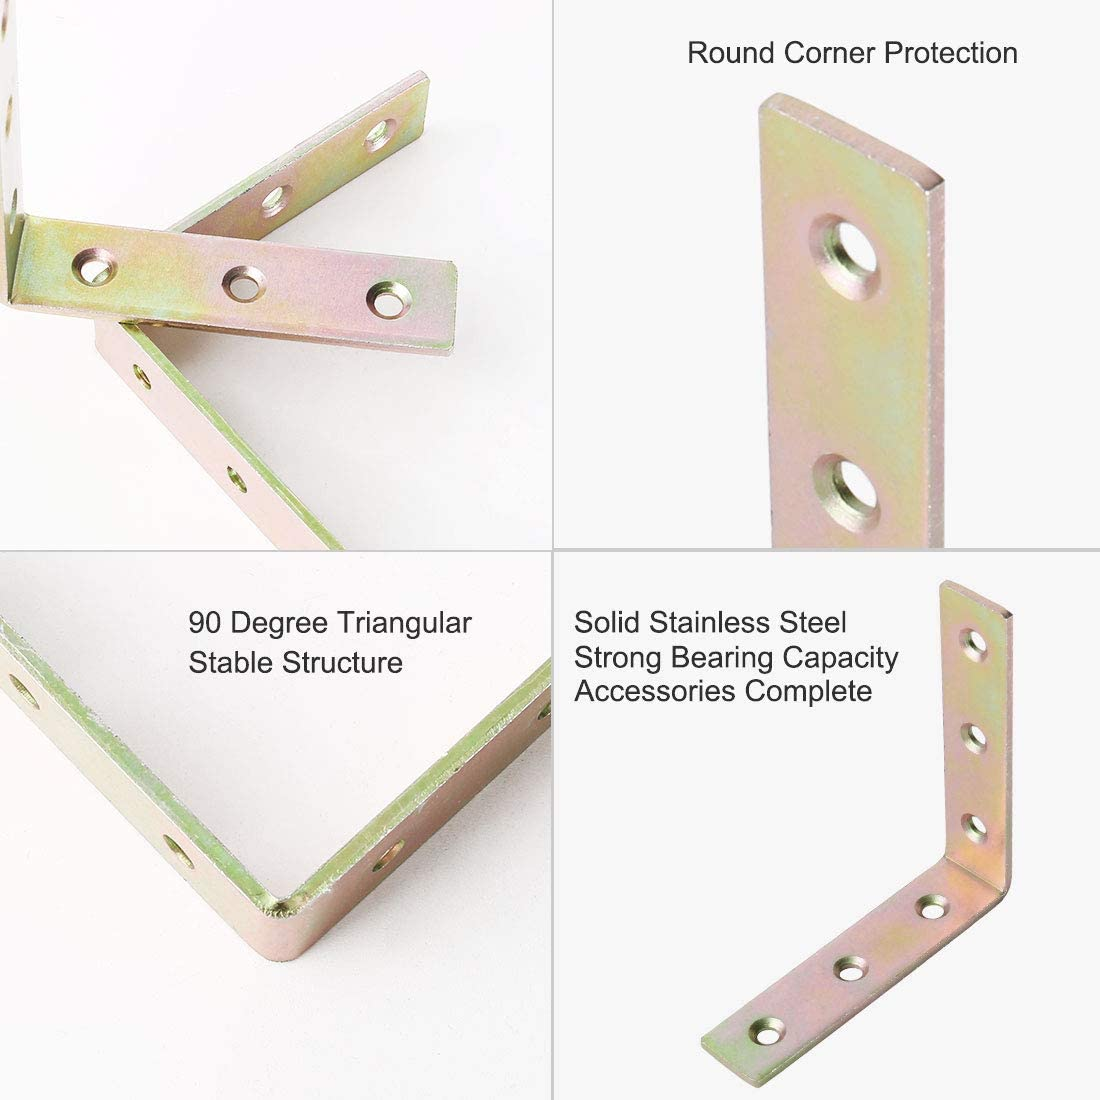 sourcing map 8pcs Angle Bracket Metal 80x80mm Corner Fastener L Shaped Right Angle Bracket Corner Protector Shelf Support for Furniture